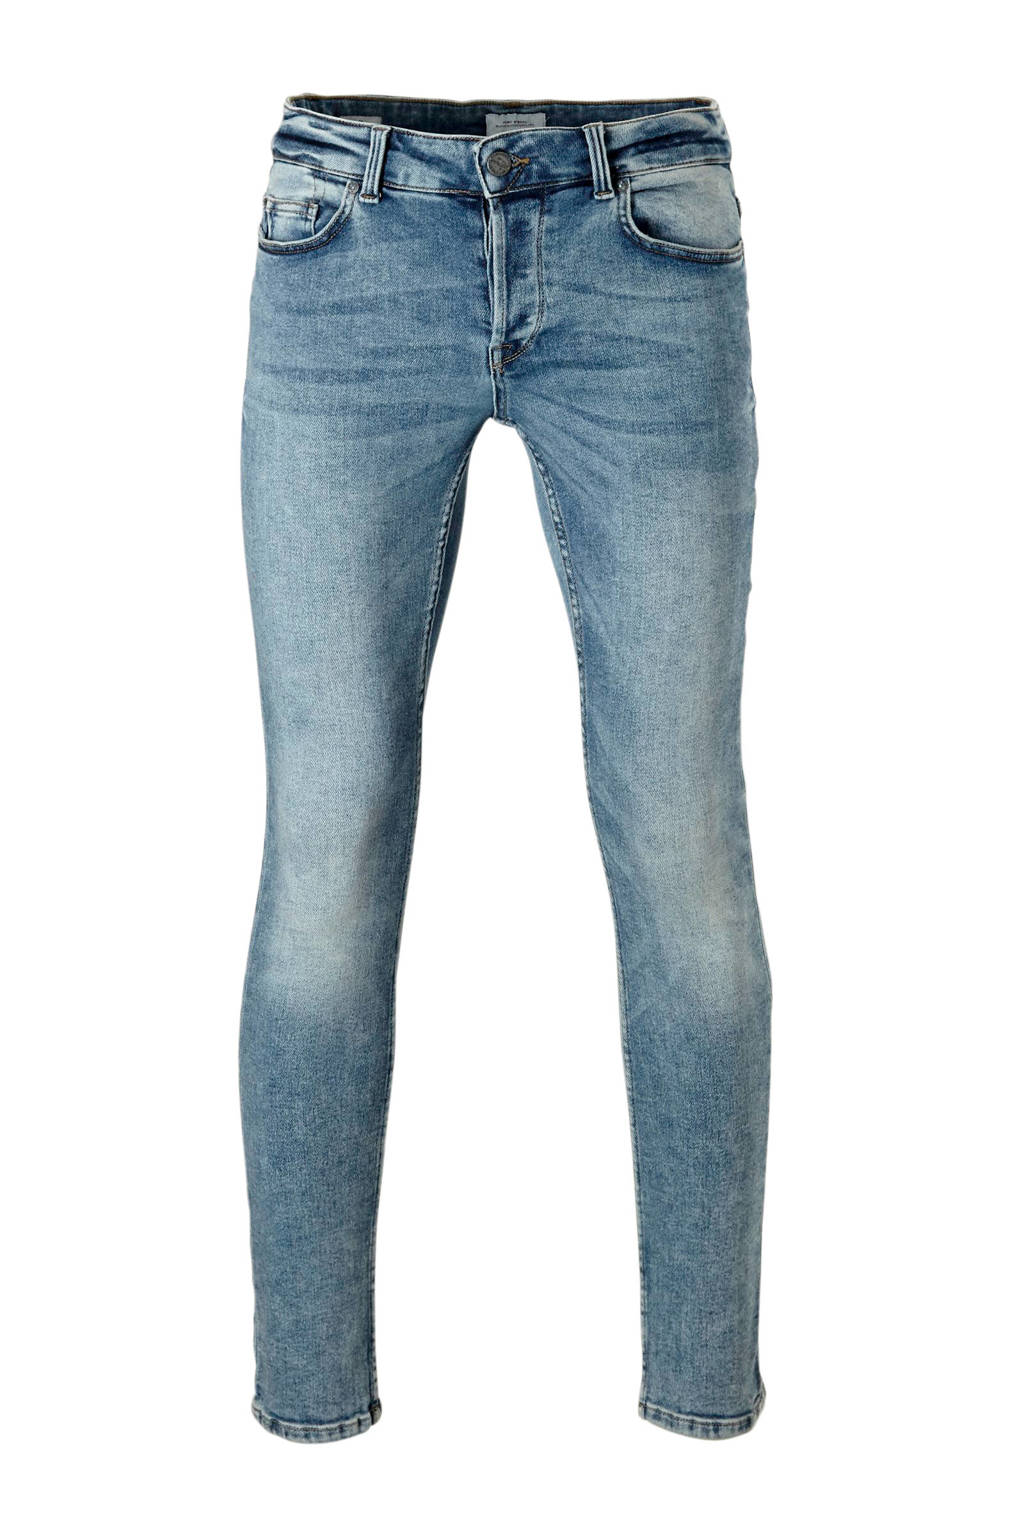 Only & Sons  slim slim fit jeans, Light denim